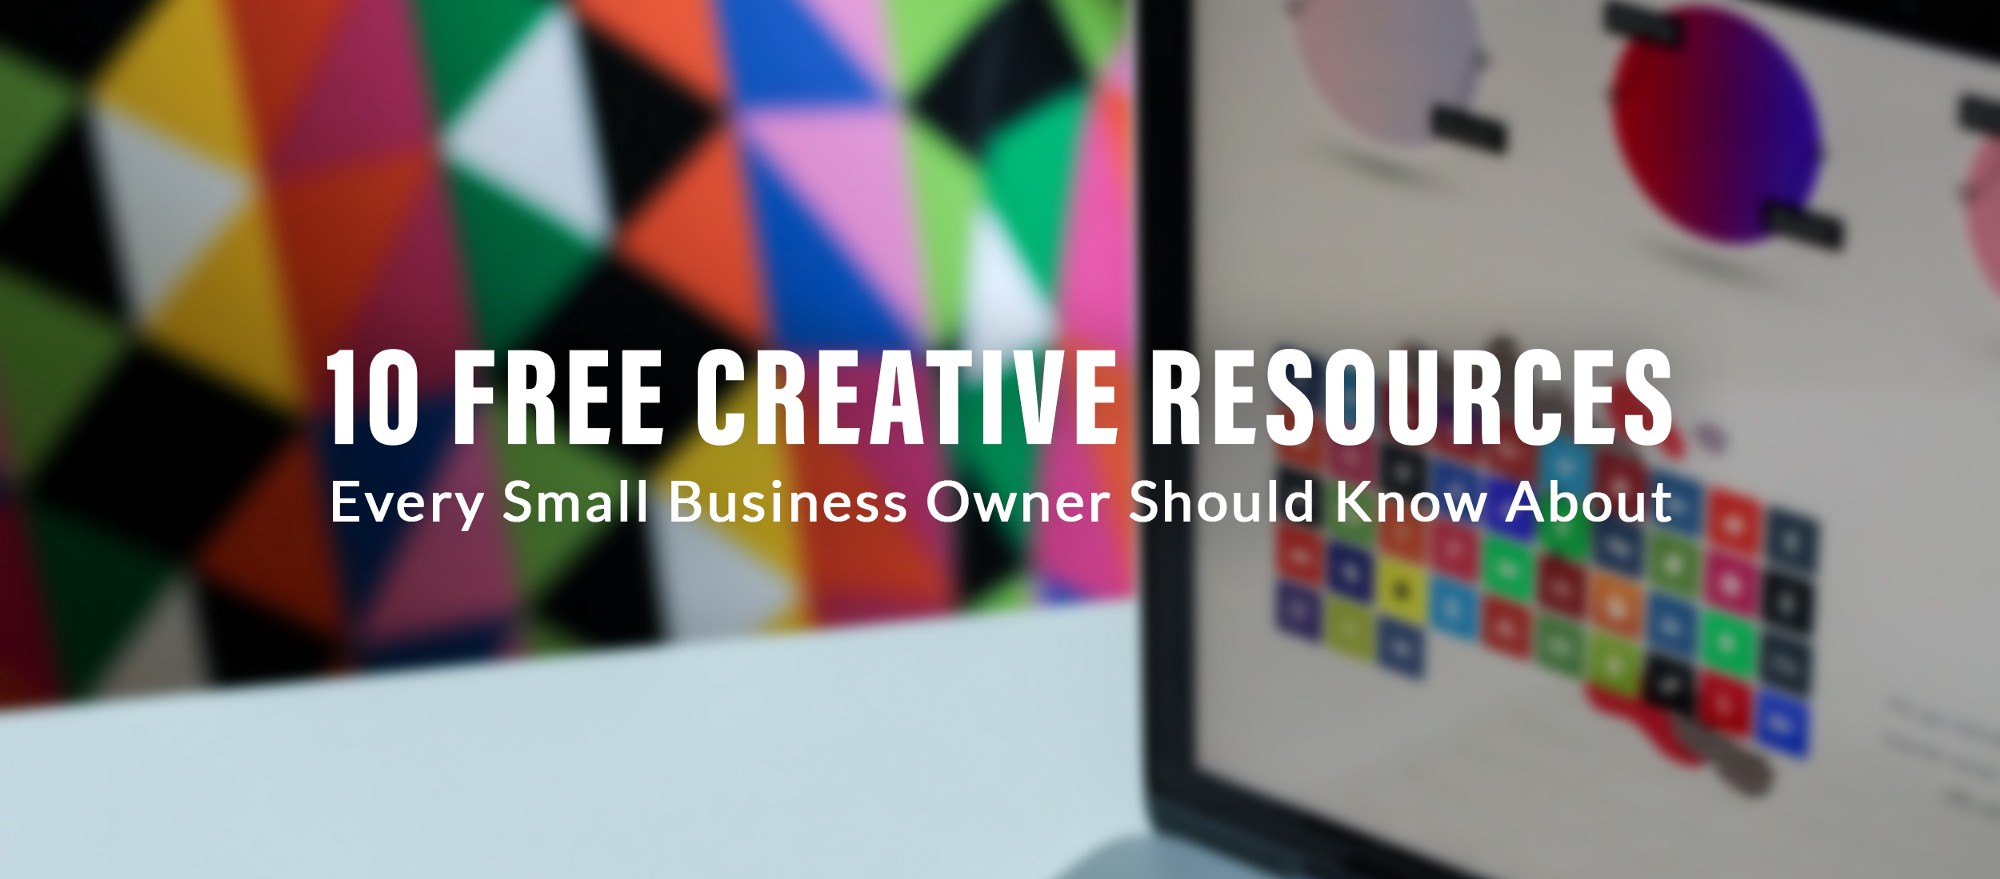 10 Free creative resources every small business owner should know about